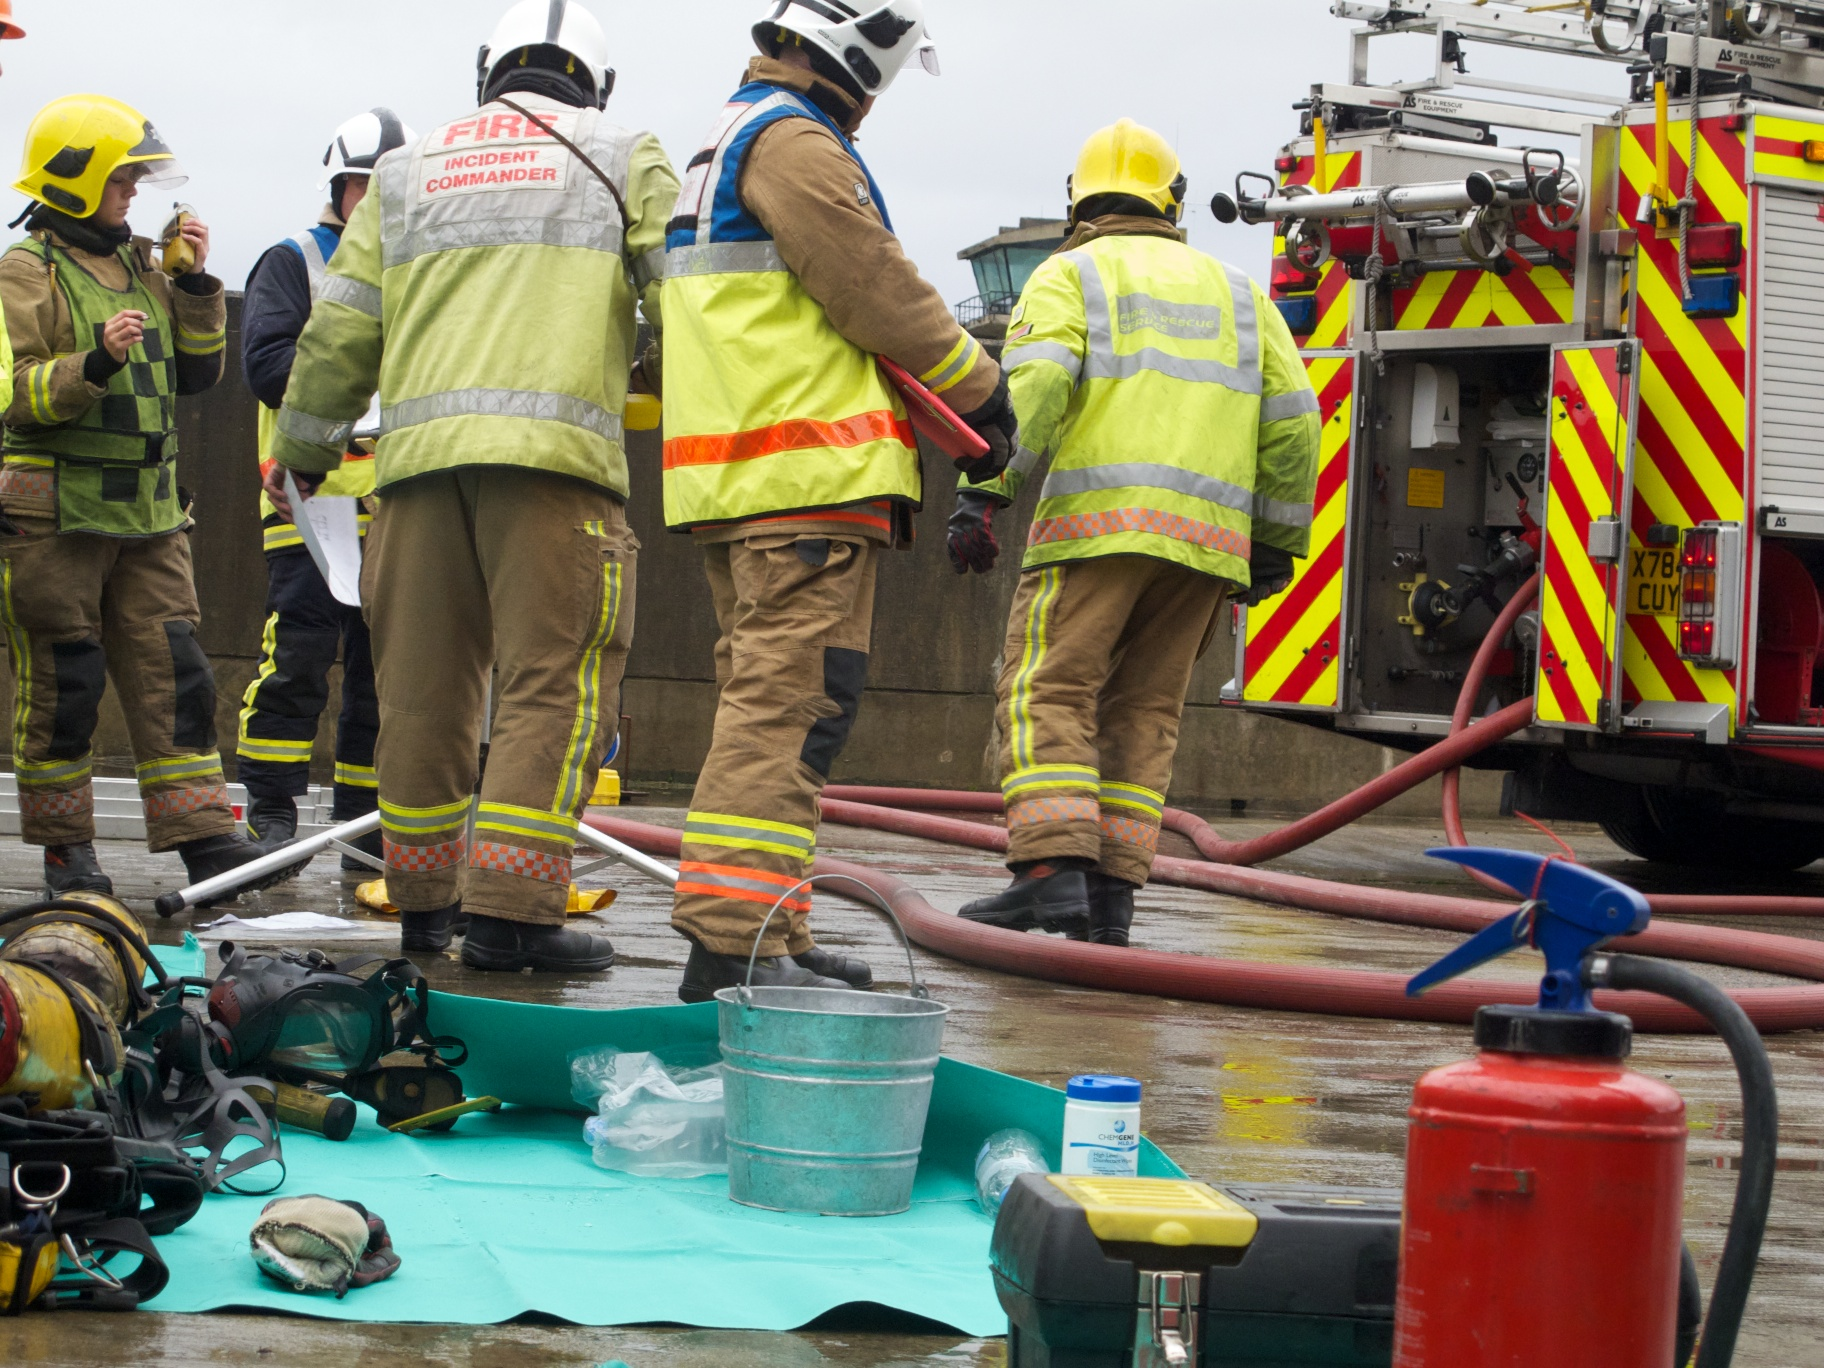 NBAC – National Breathing Apparatus Challenge